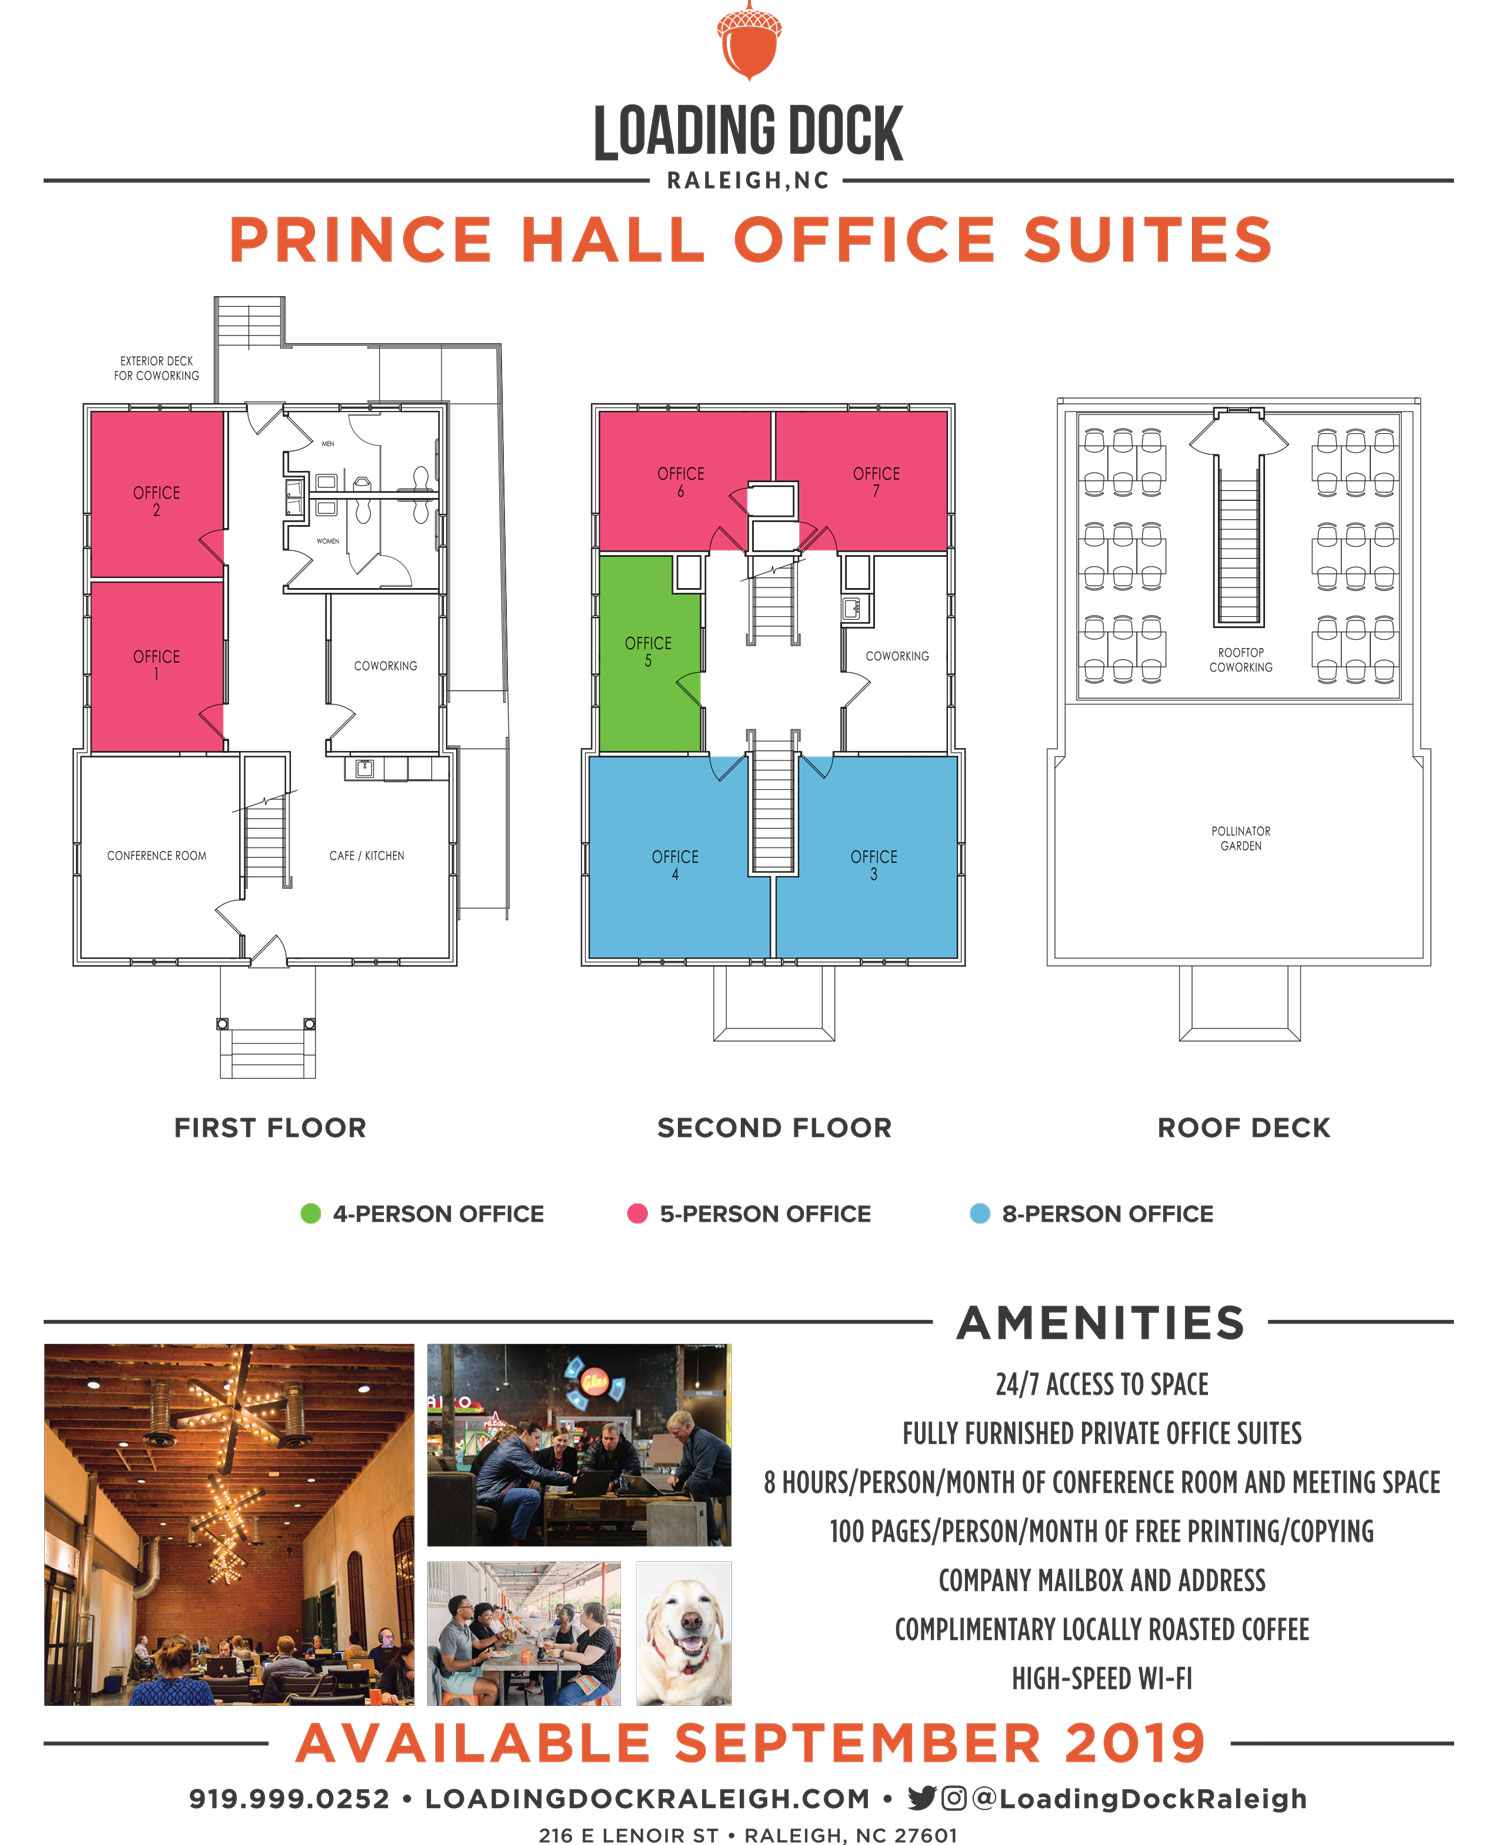 prince-hall-office-suites.jpg